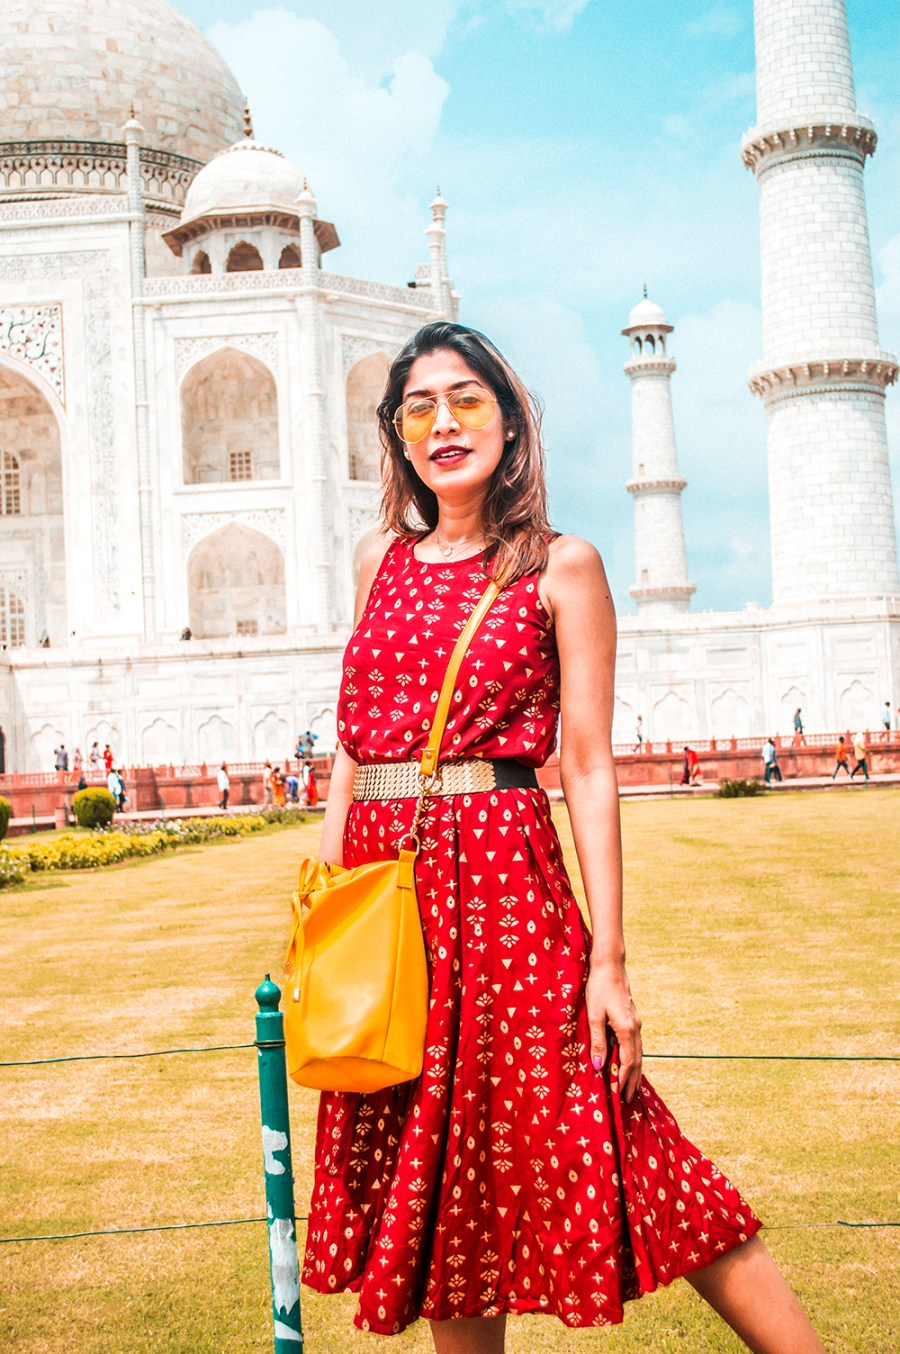 Style Over Coffee, Taj Mahal, Travel, India, Fashion Blogger, Influencer, Ethnic Dress, Sarmistha Goswami, Indian Blogger, Travel Blogger-5